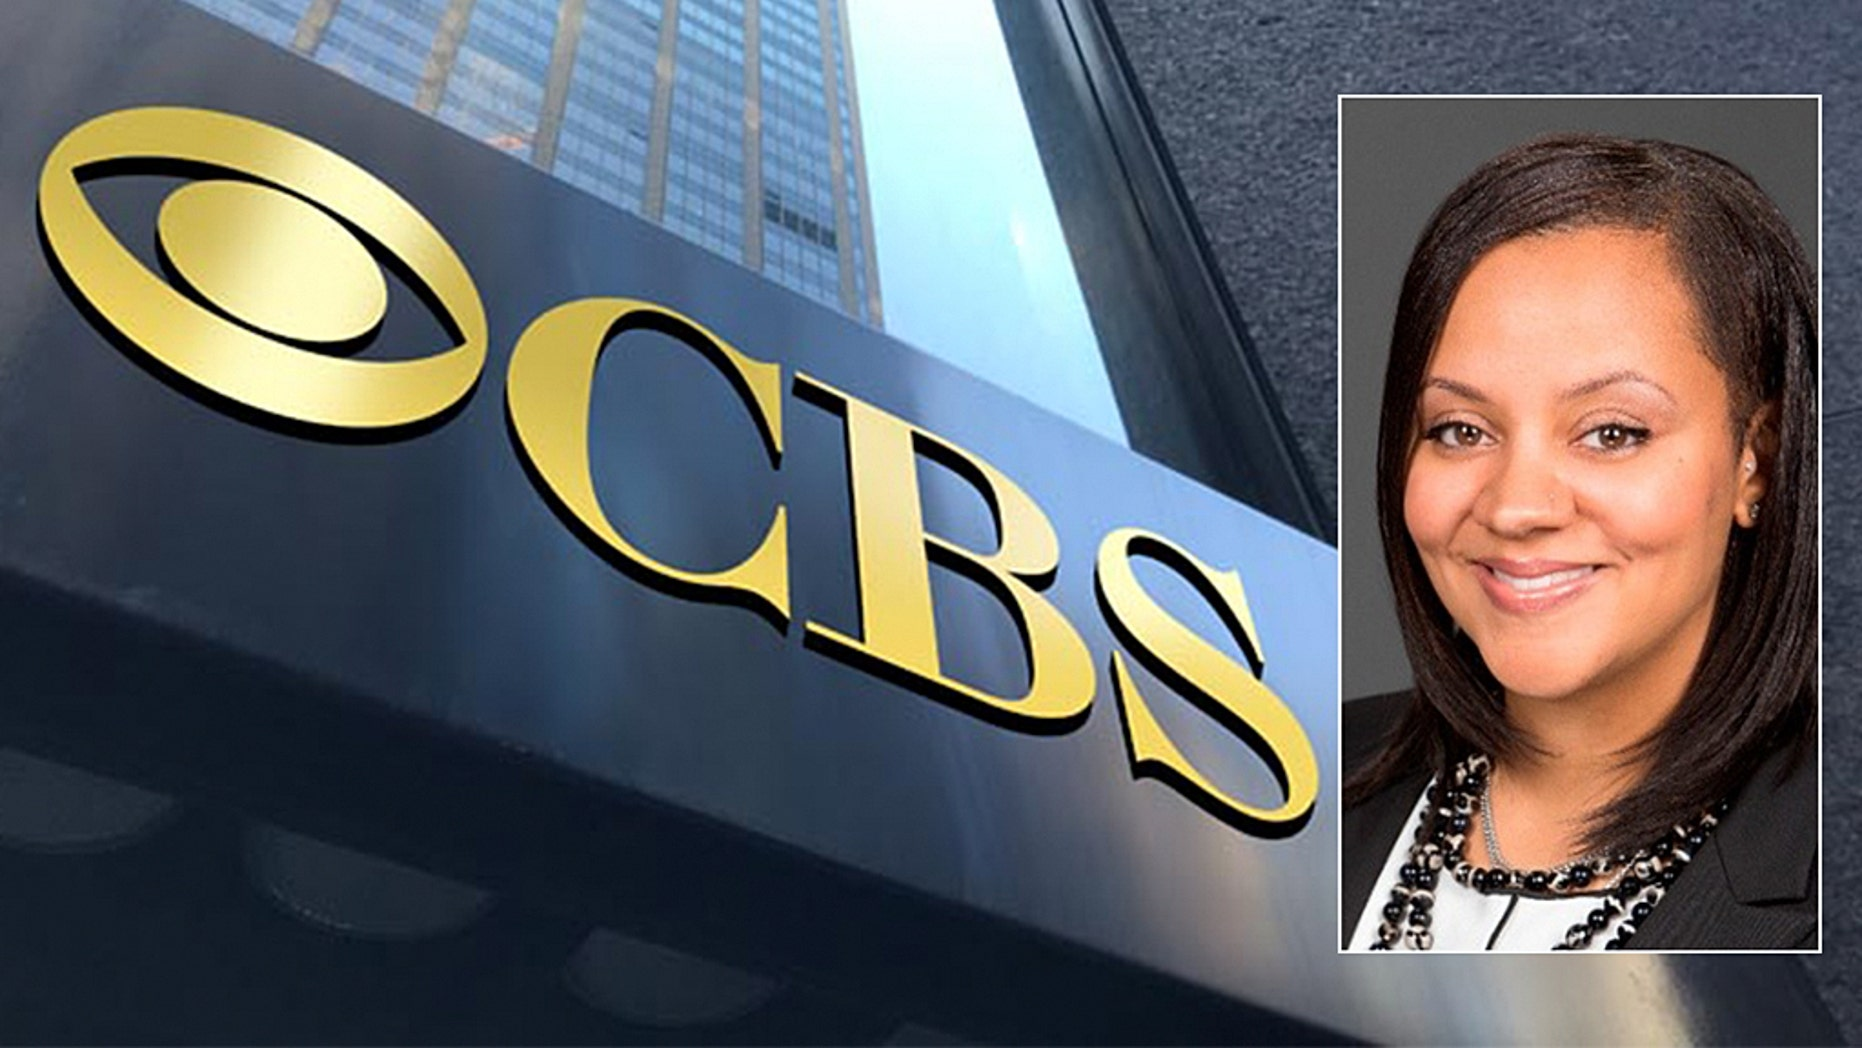 Westlake Legal Group Whitney-Davis-CBS Former CBS exec blasts network for culture of 'systematic racism, discrimination and sexual harassment' fox-news/world/scandals fox-news/entertainment/media fox news fnc/entertainment fnc article Anna Hopkins 889dc6bb-48f0-5a5e-9680-794bad627072